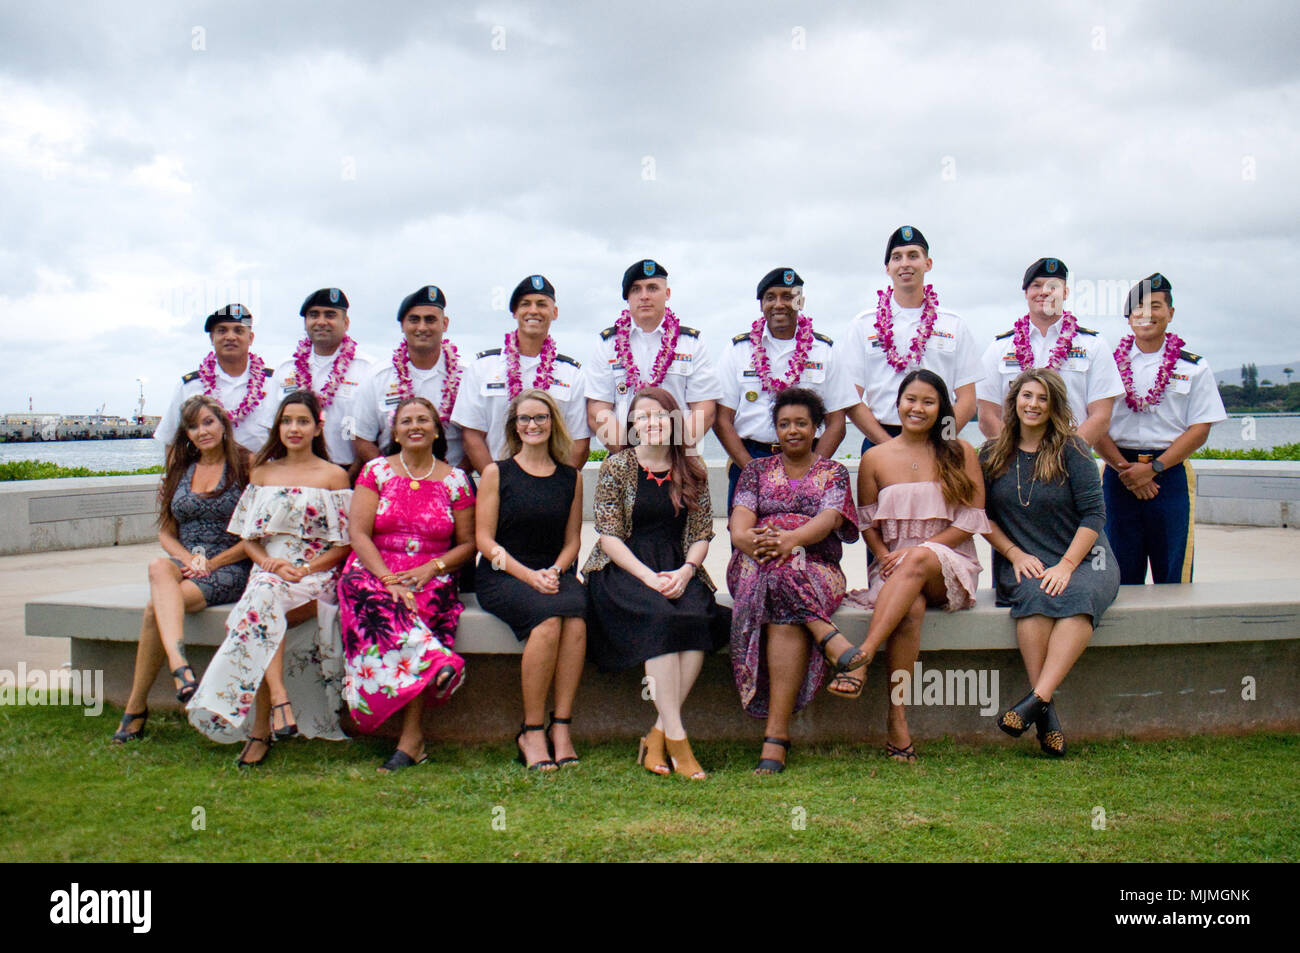 JOINT BASE PEARL HARBOR-HICKAM — The graduates of the